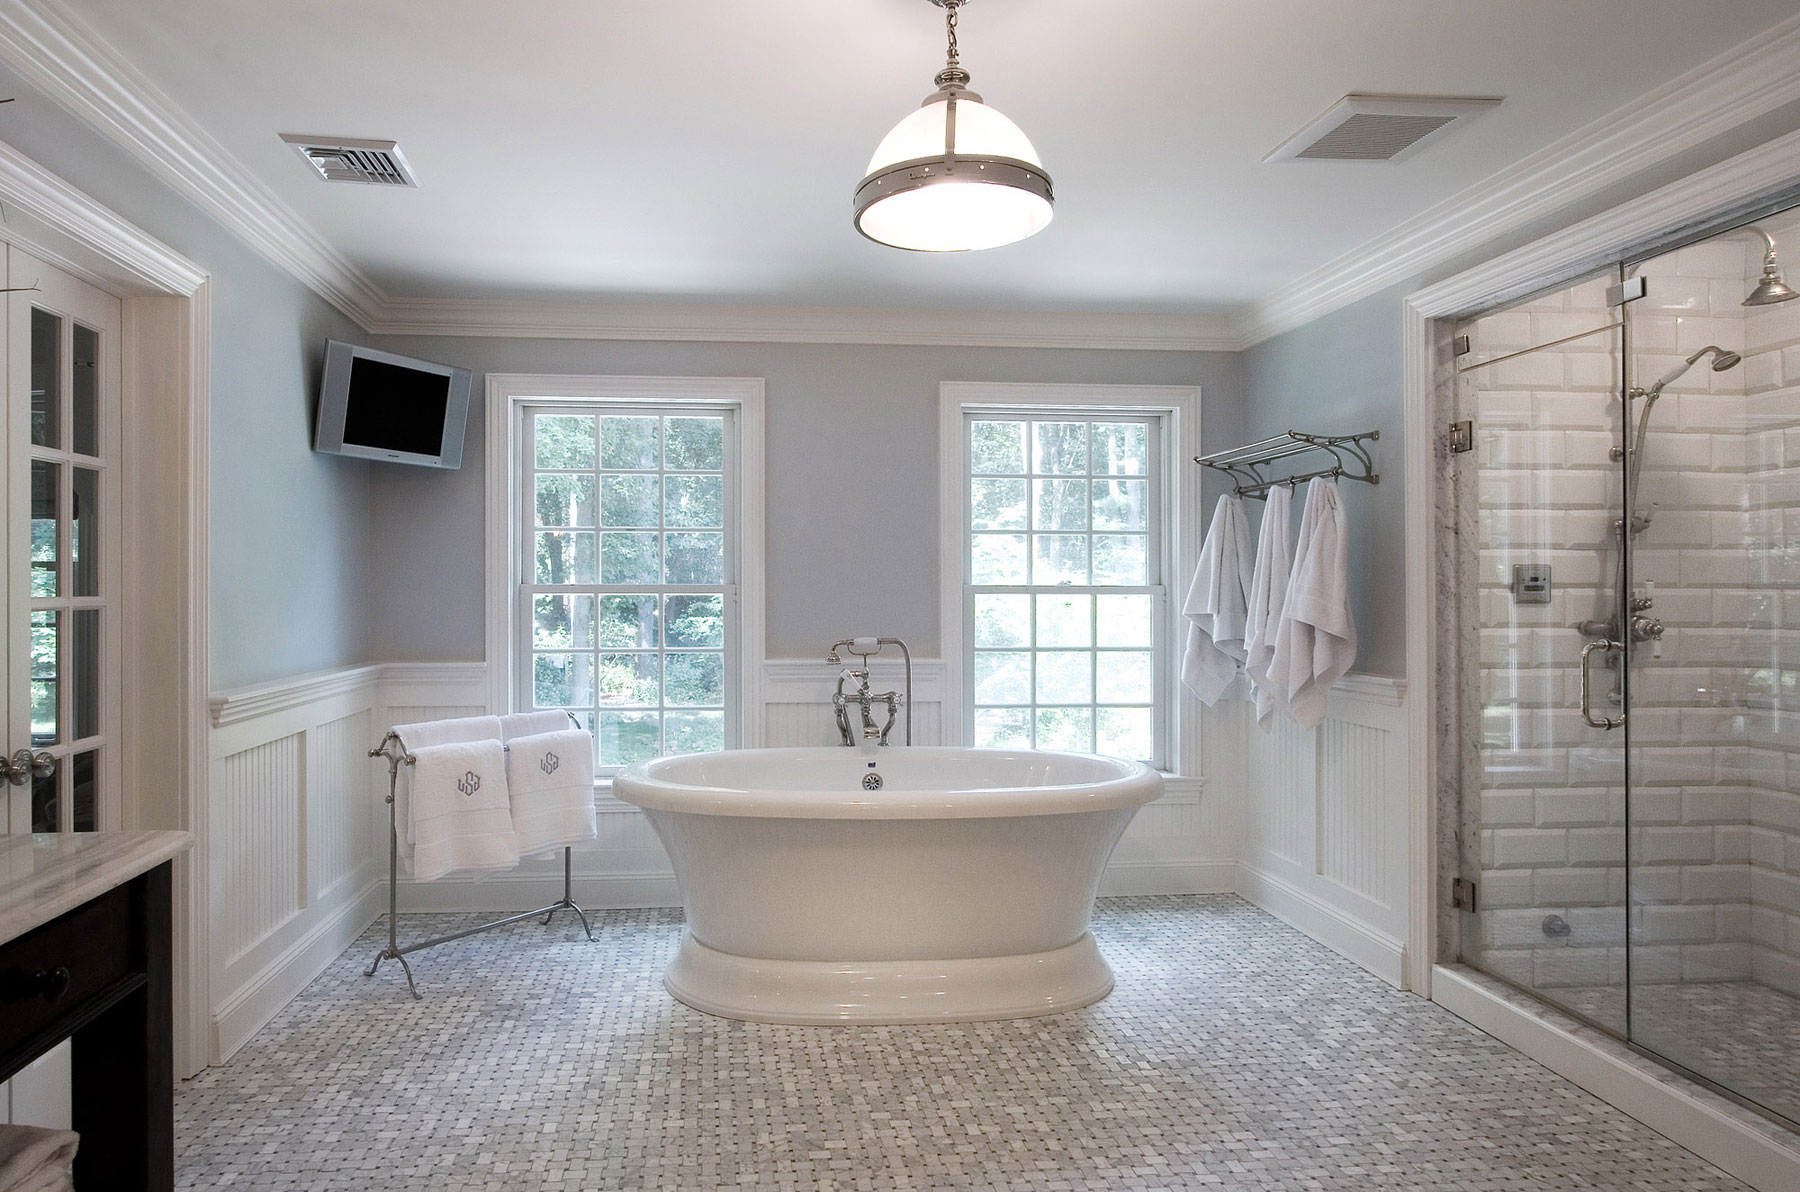 Master bathroom designs be equipped bathroom remodel ideas be equipped master bathroom ideas